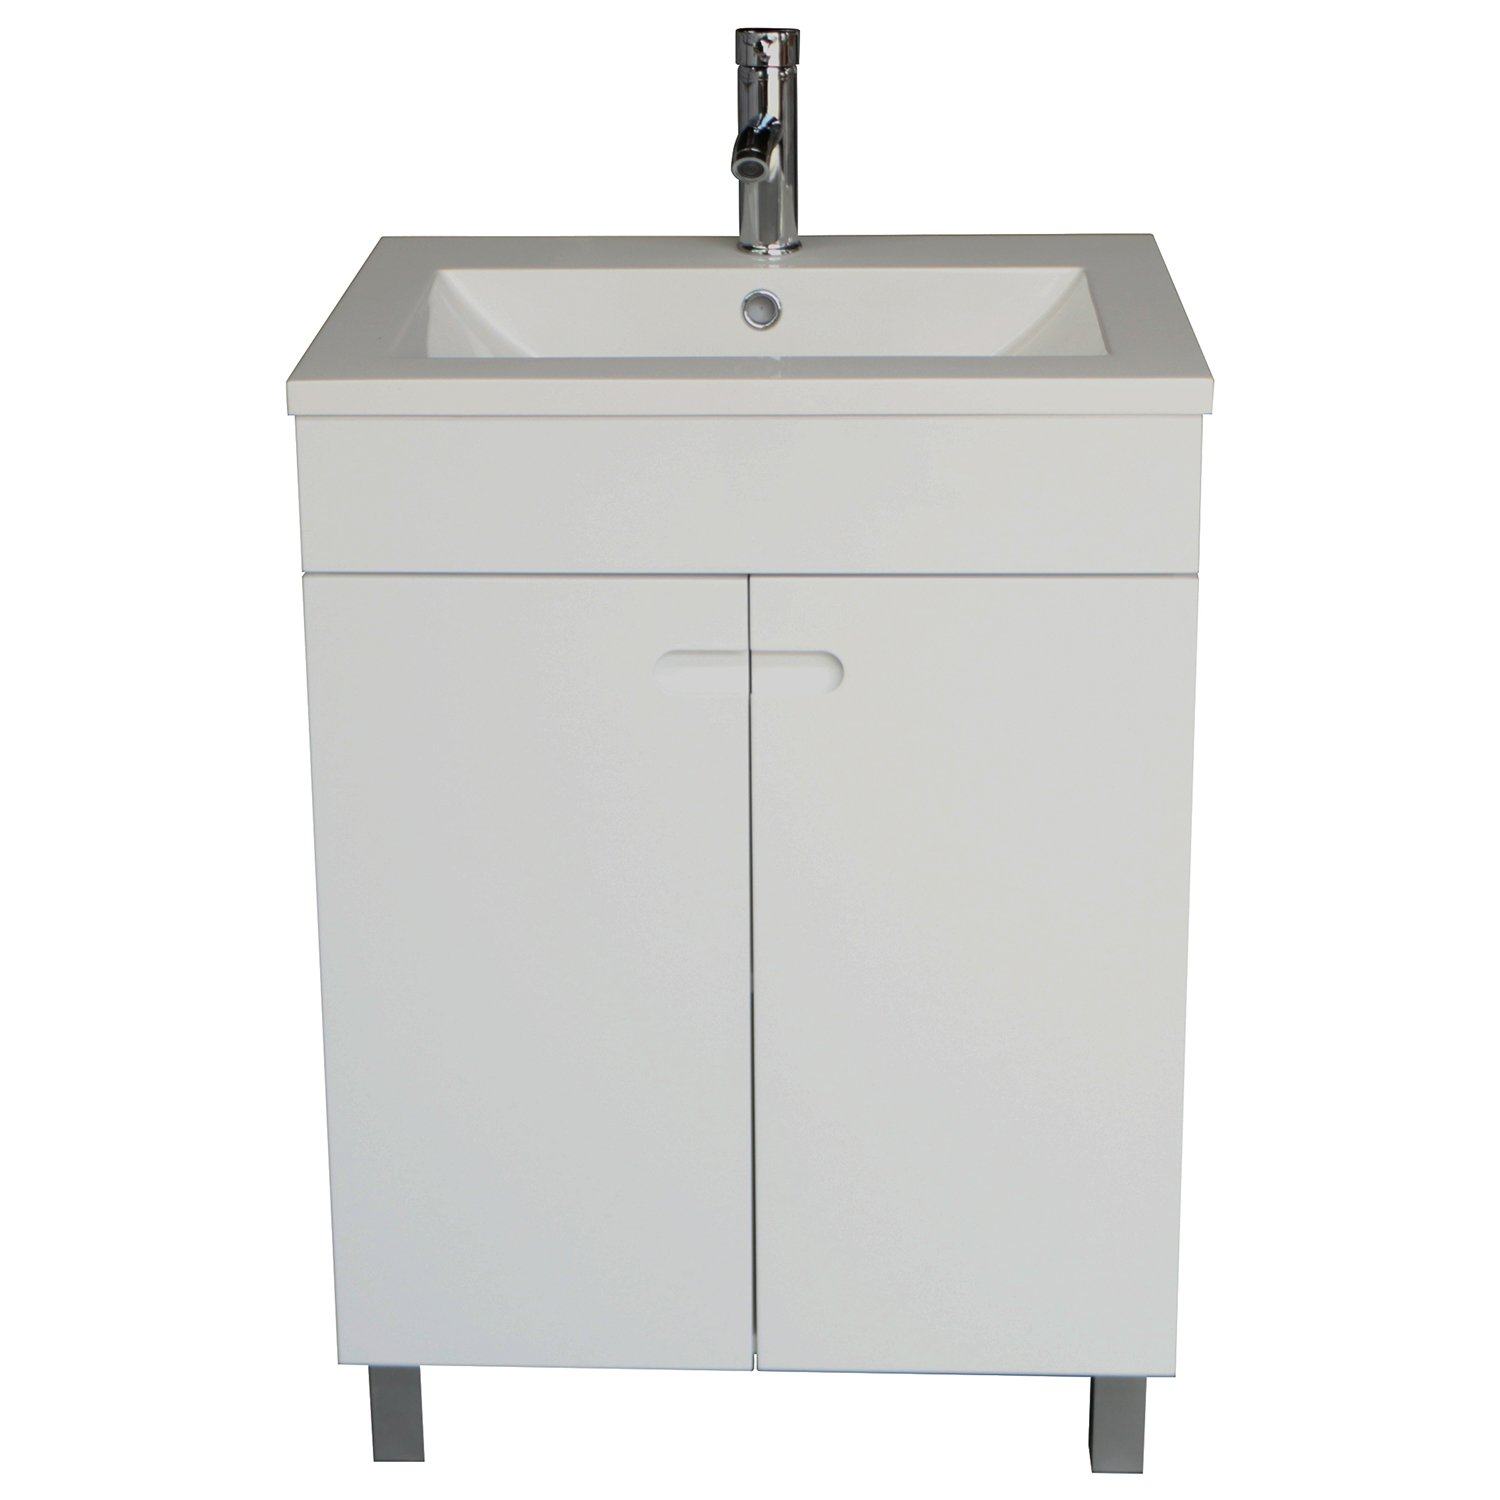 Sliverylake 24 Inch Solid MDF Wood Cabinet Storage Bathroom Vanity Top Vessel Sink Undermount in White with Faucet & Drain